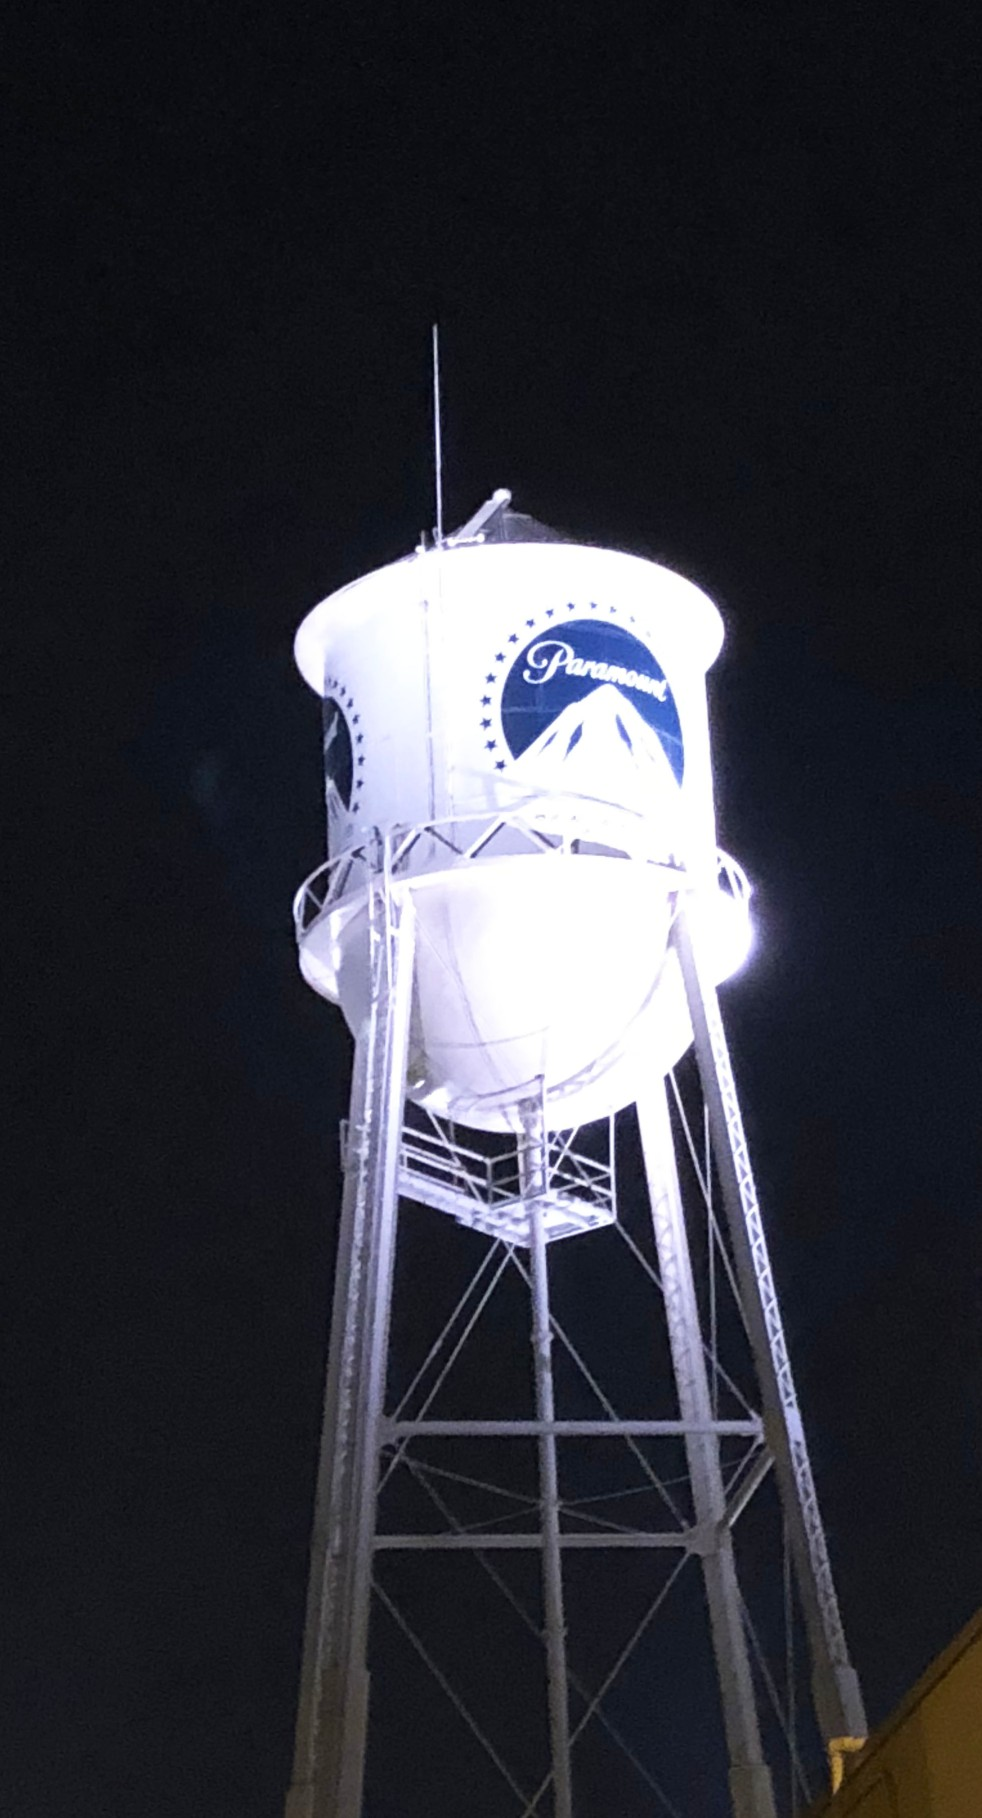 PSWatertower